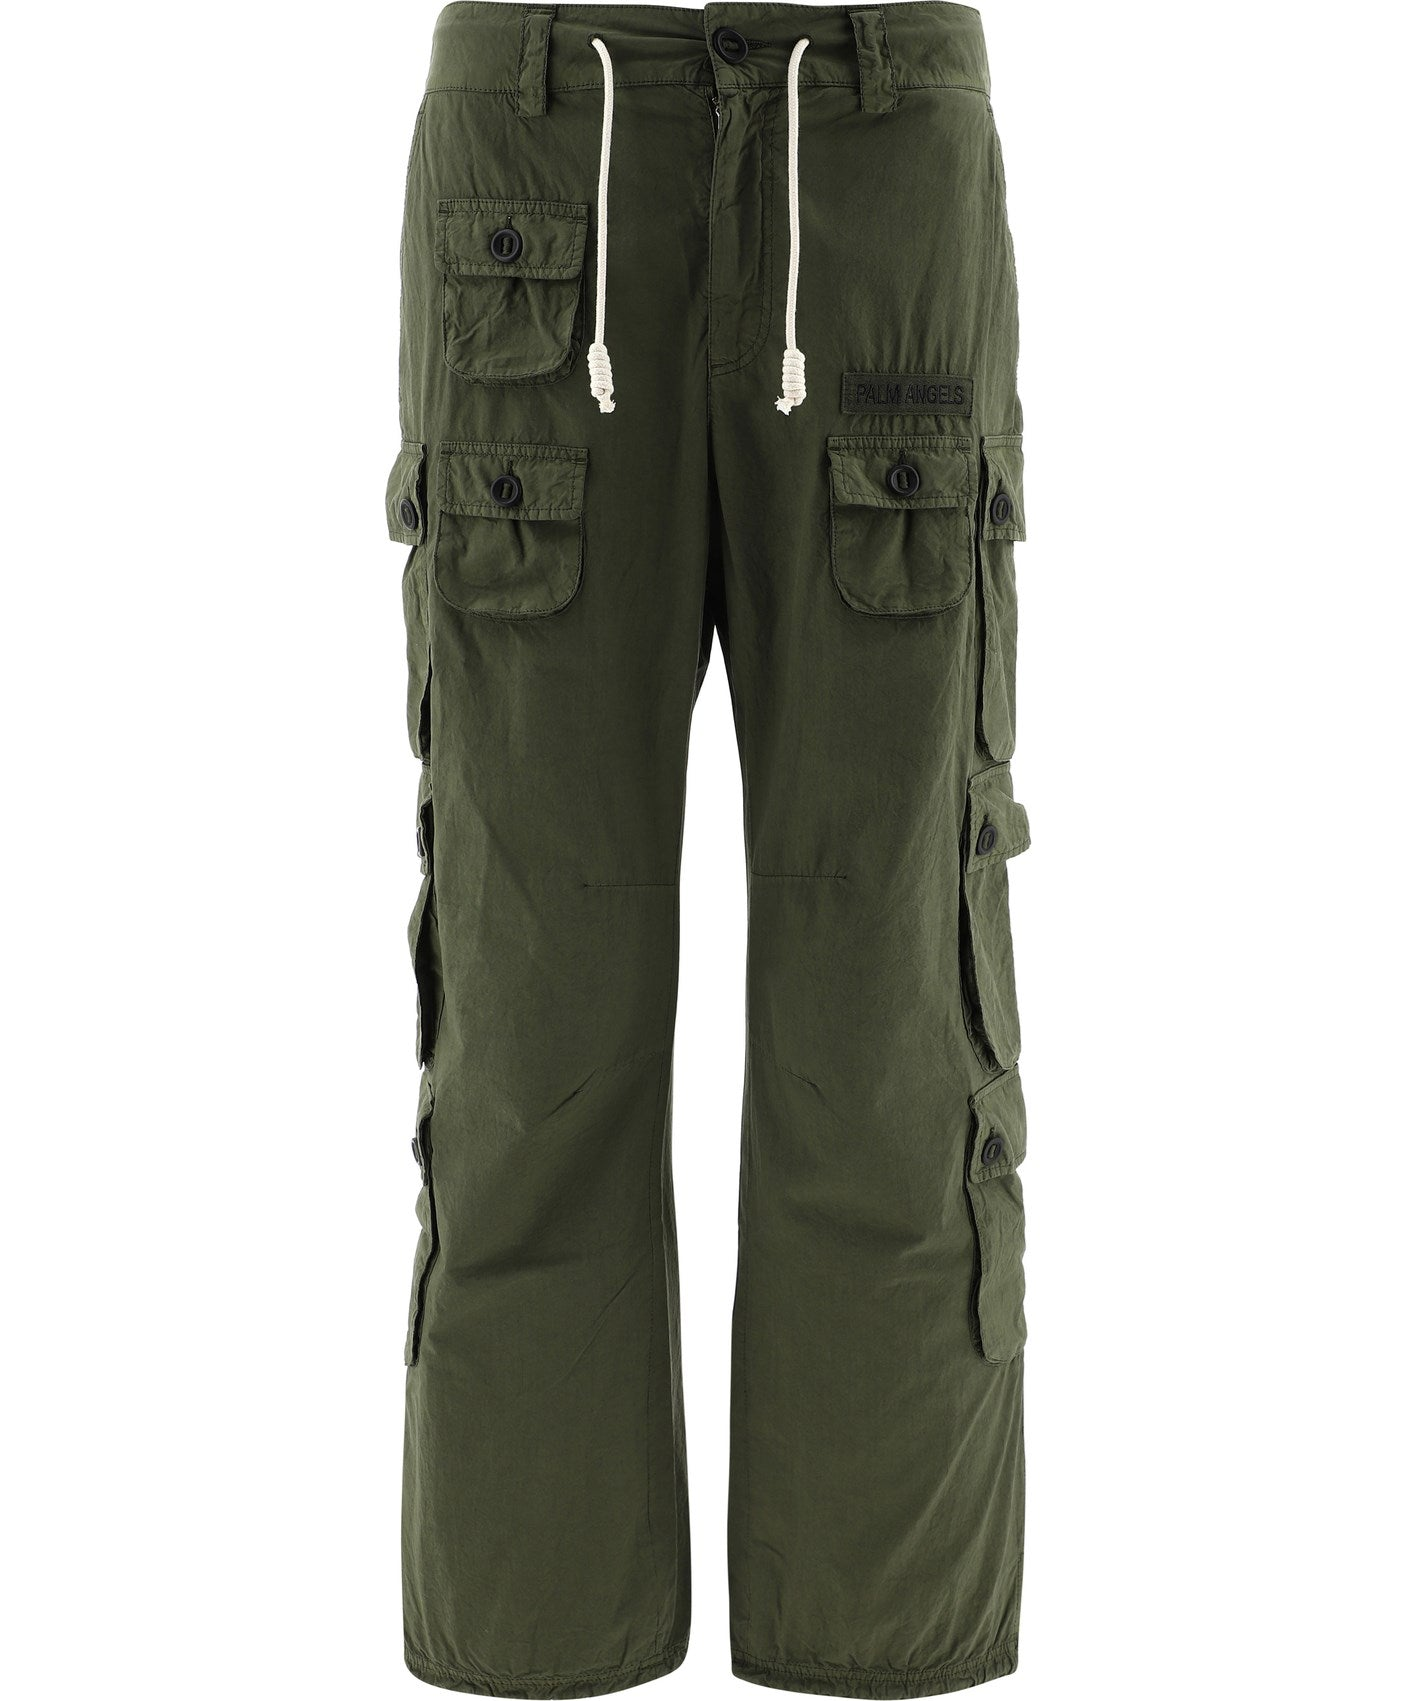 Palm Angels Cottons PALM ANGELS POCKET DETAIL CARGO PANTS